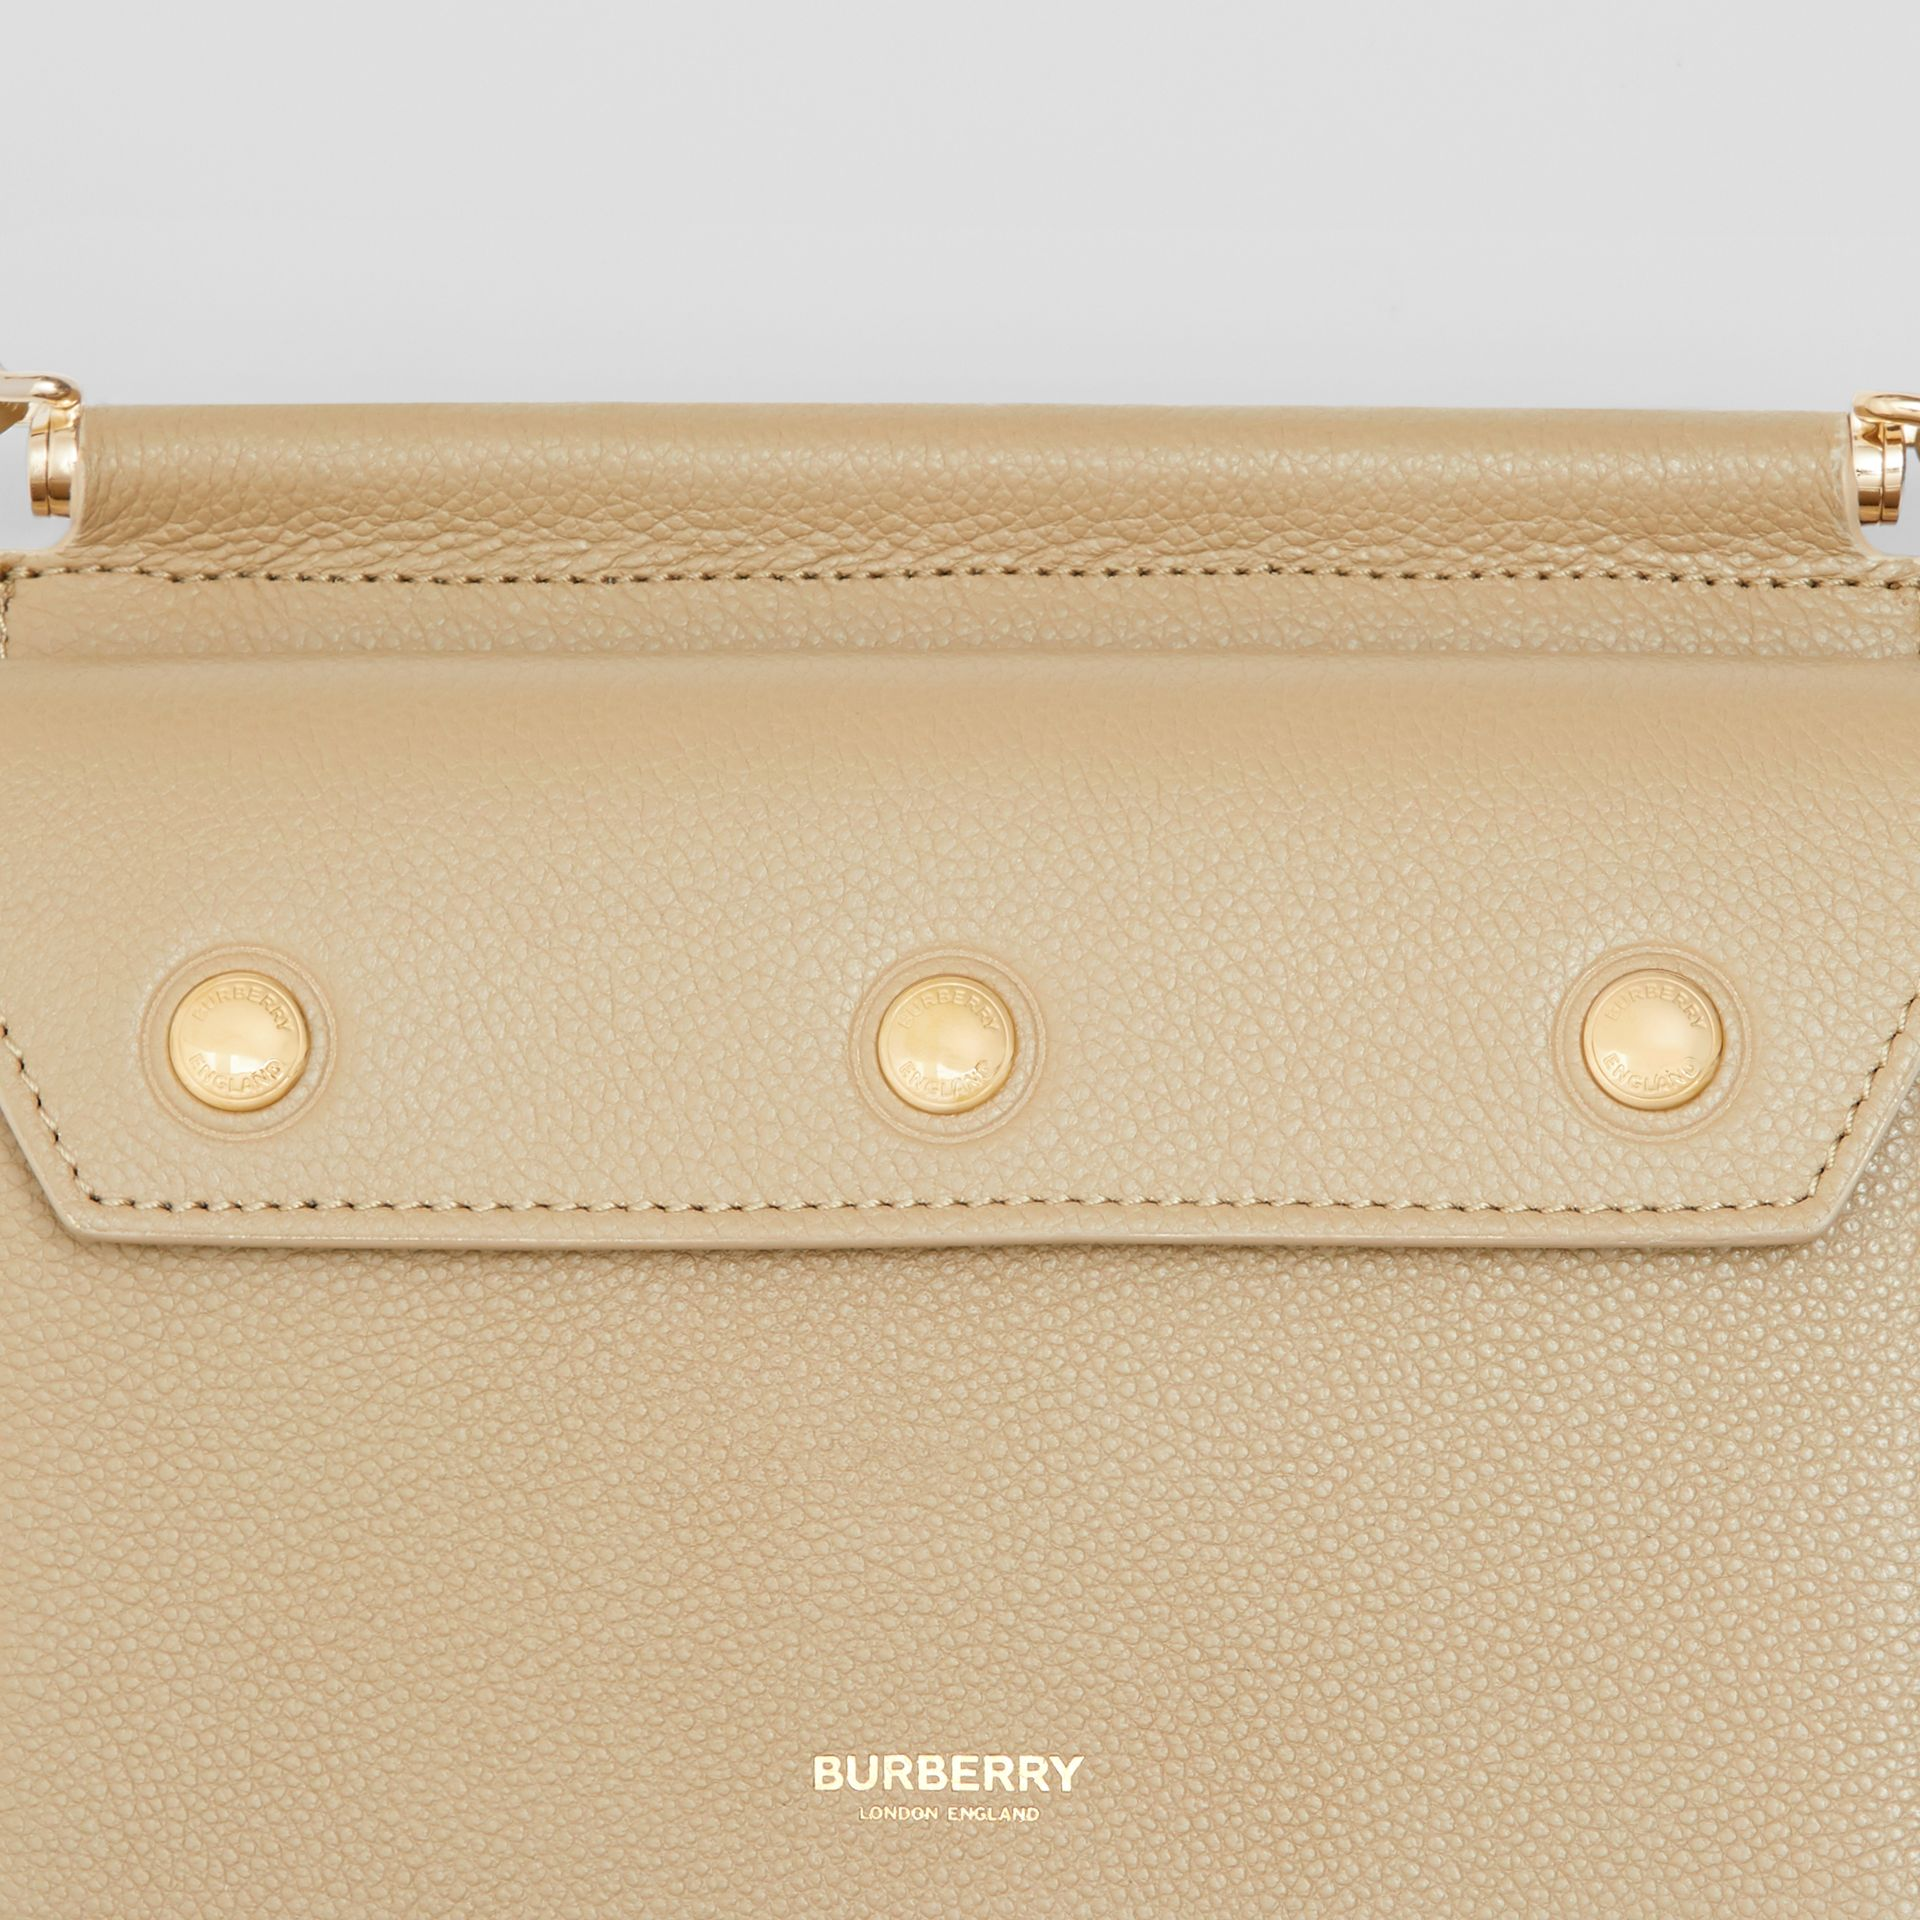 Mini Leather Title Bag with Pocket Detail in Honey - Women | Burberry - gallery image 1